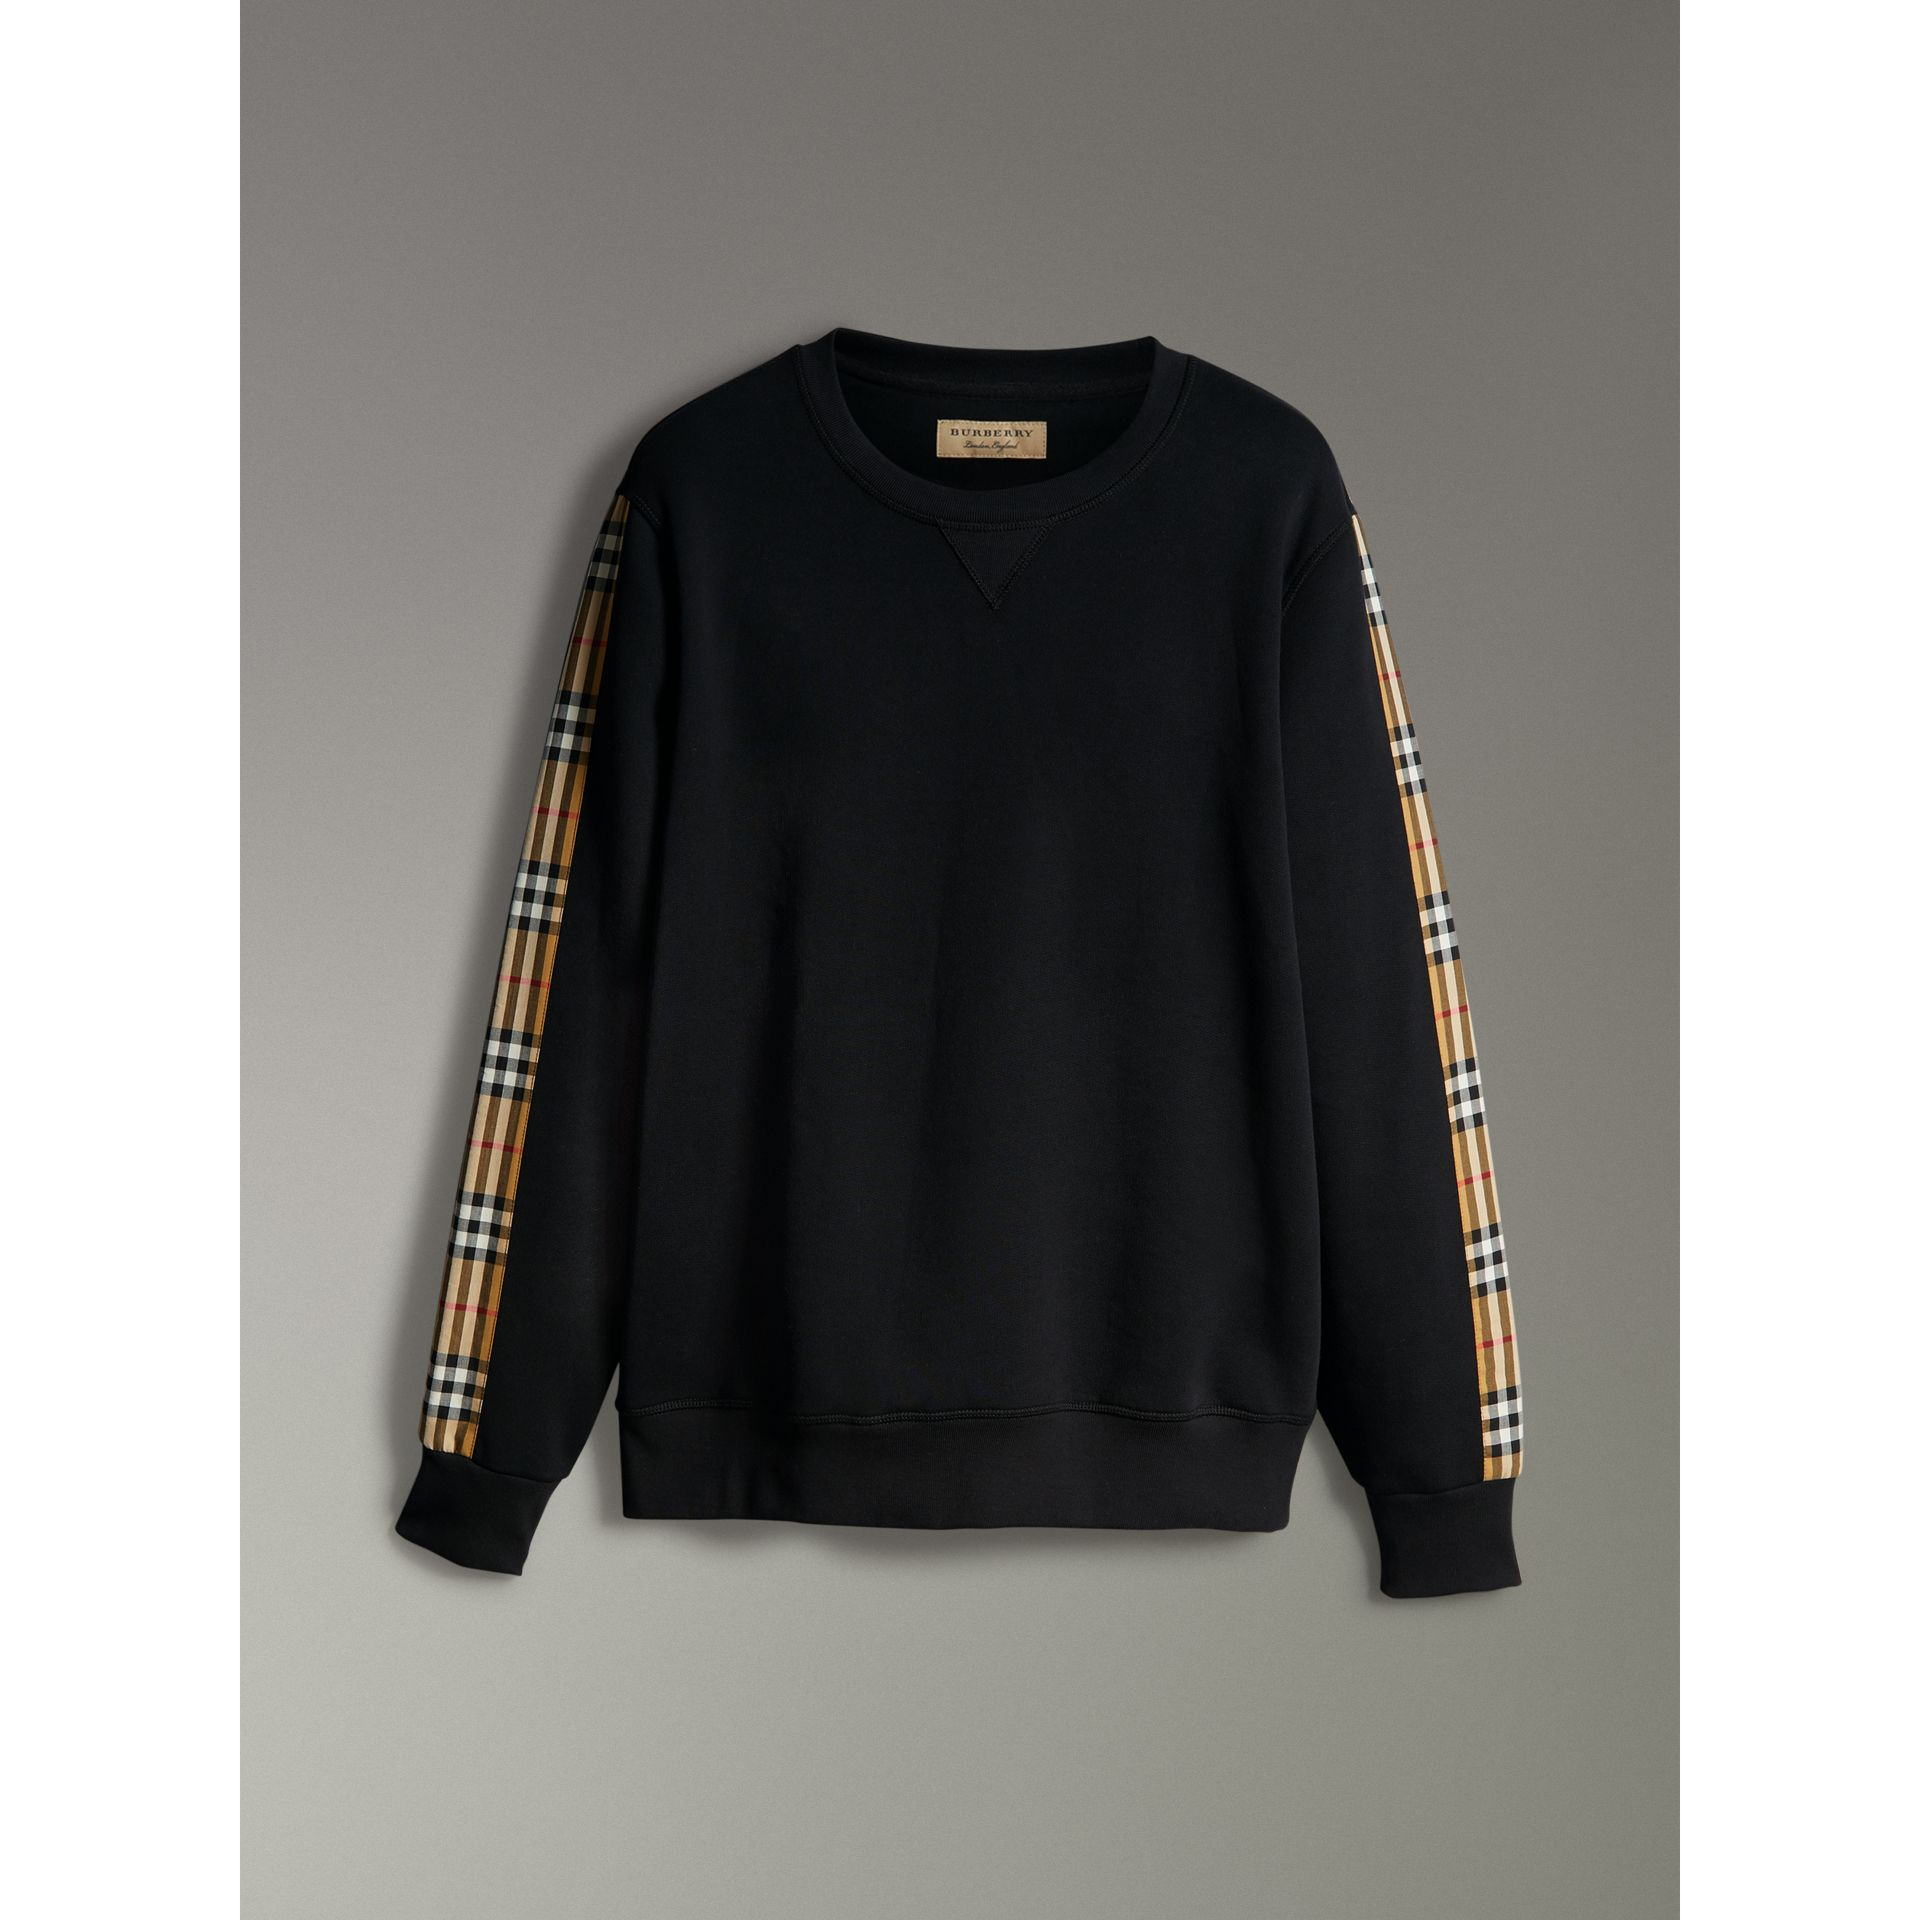 Vintage Check Detail Cotton Blend Sweatshirt in Black - Men | Burberry Singapore - gallery image 3